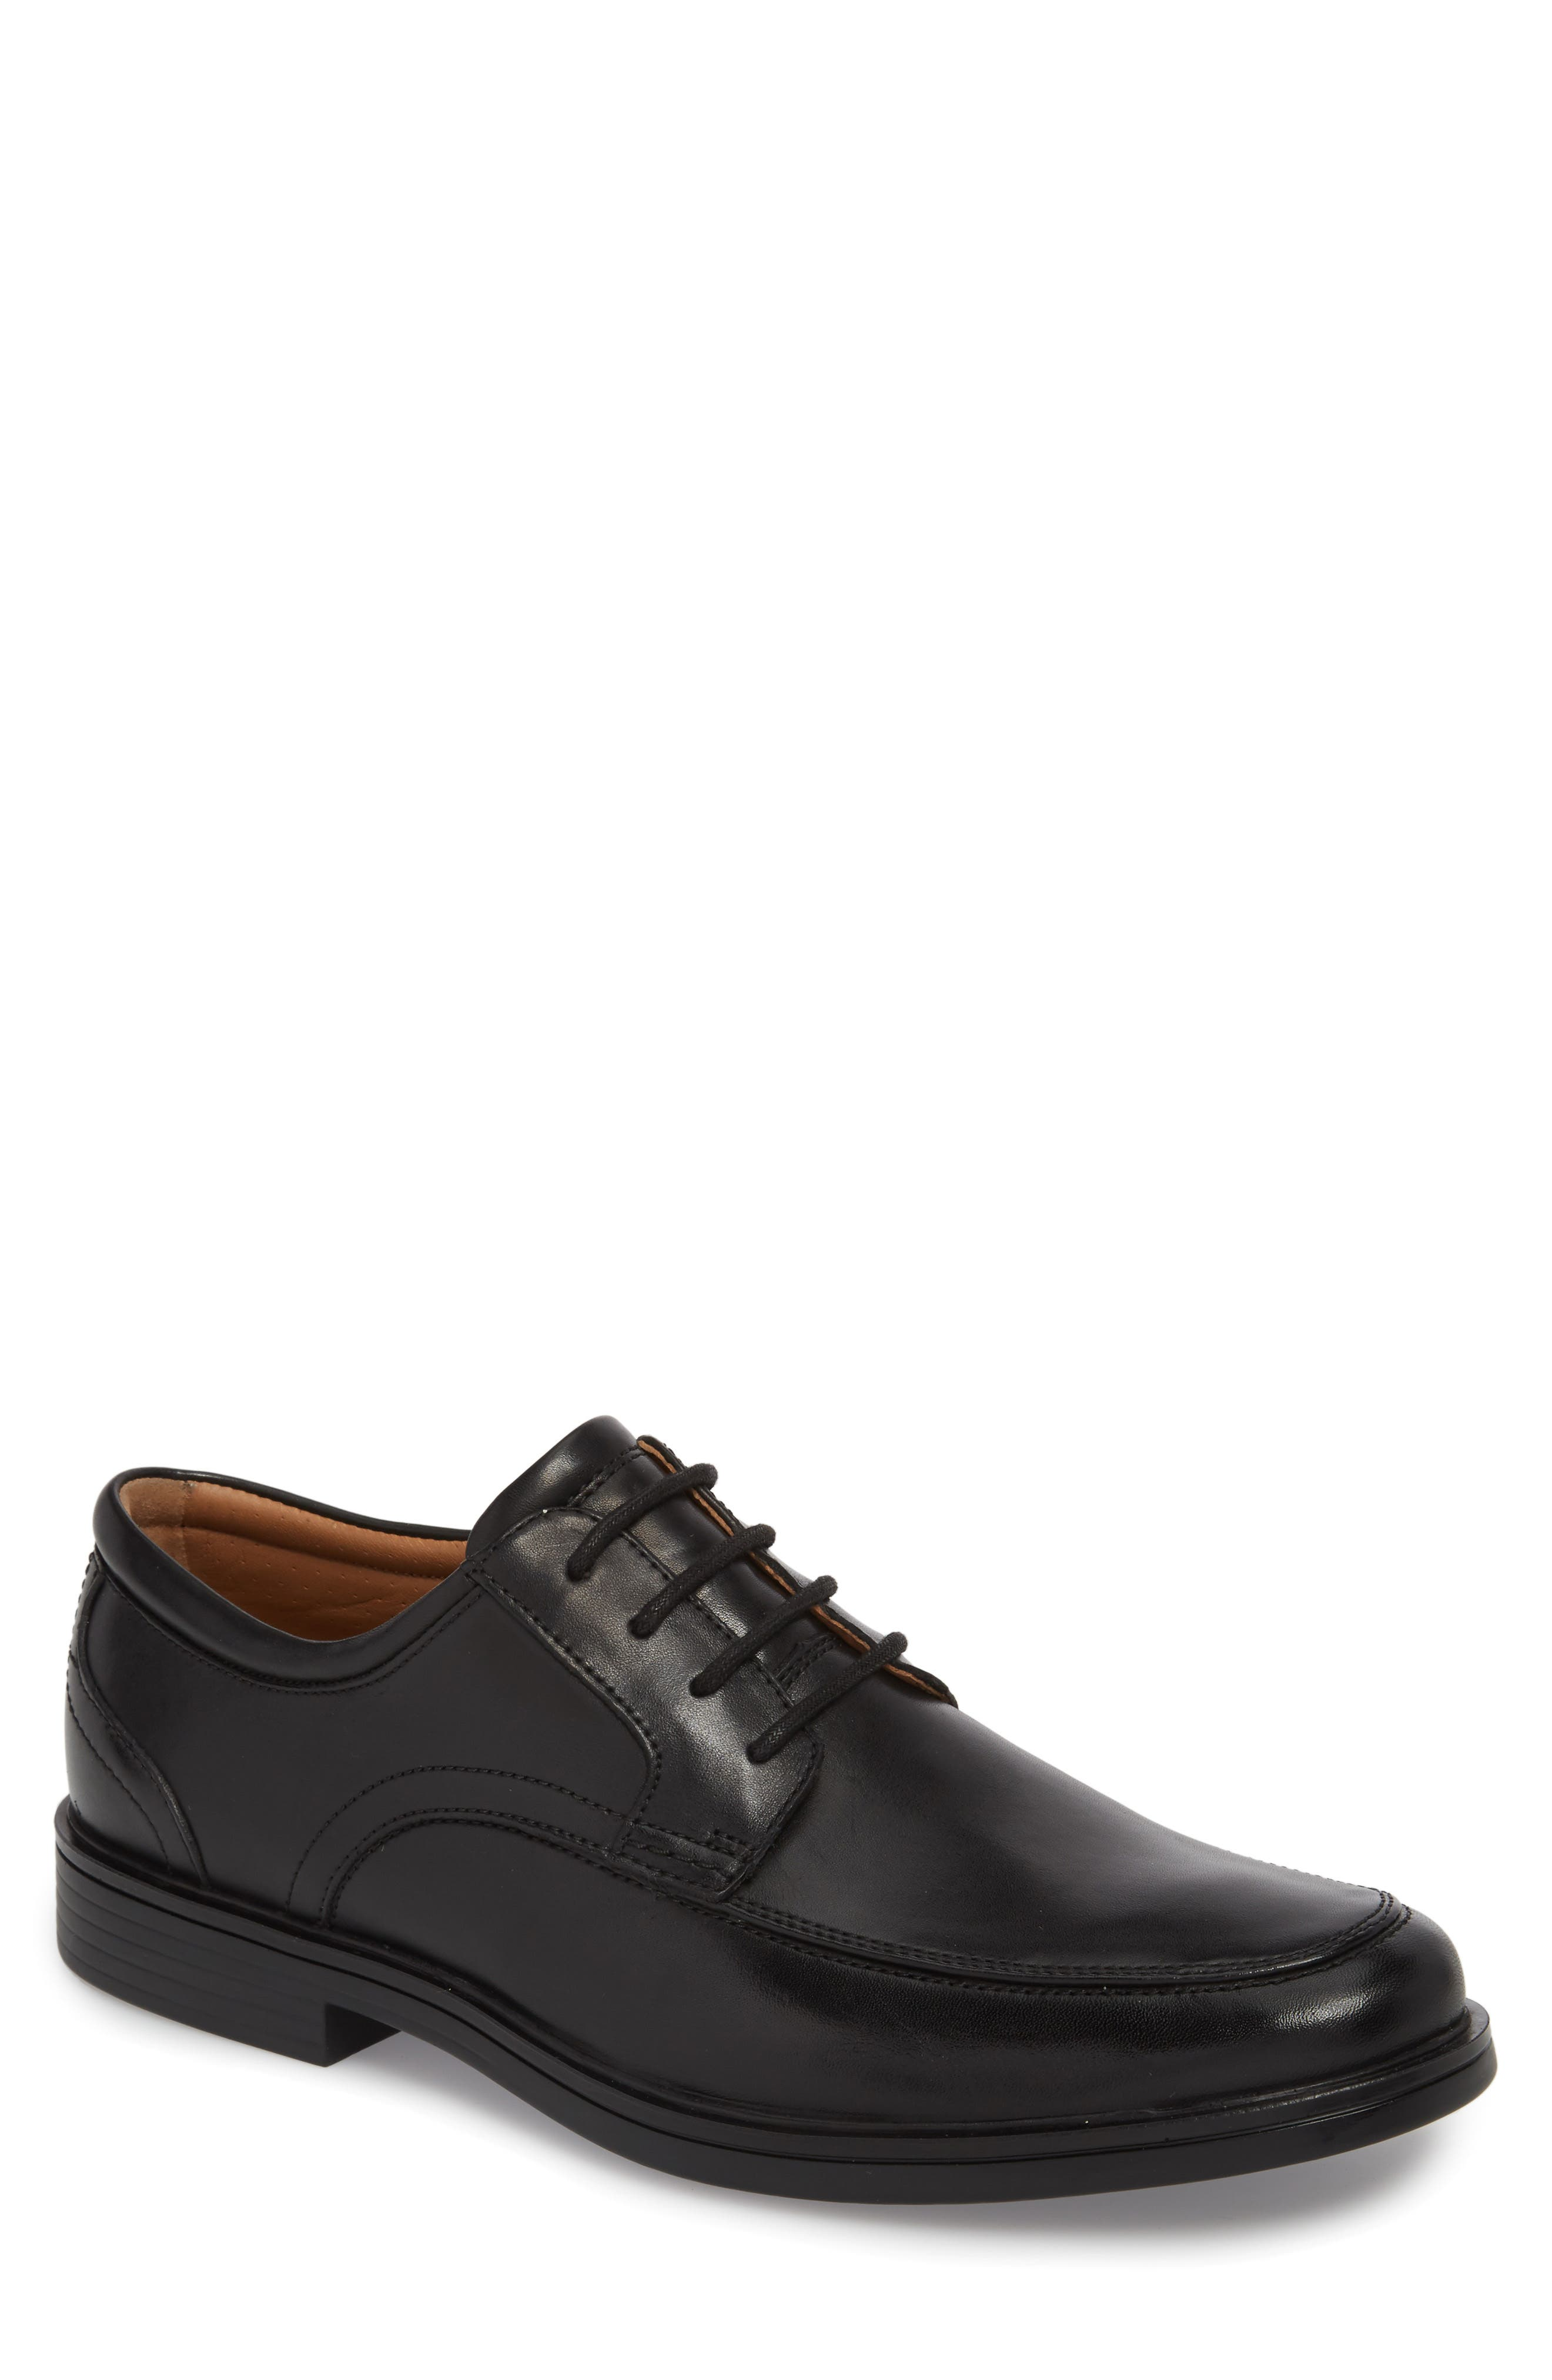 Unaldric Moc Toe Derby,                             Main thumbnail 1, color,                             Black Leather